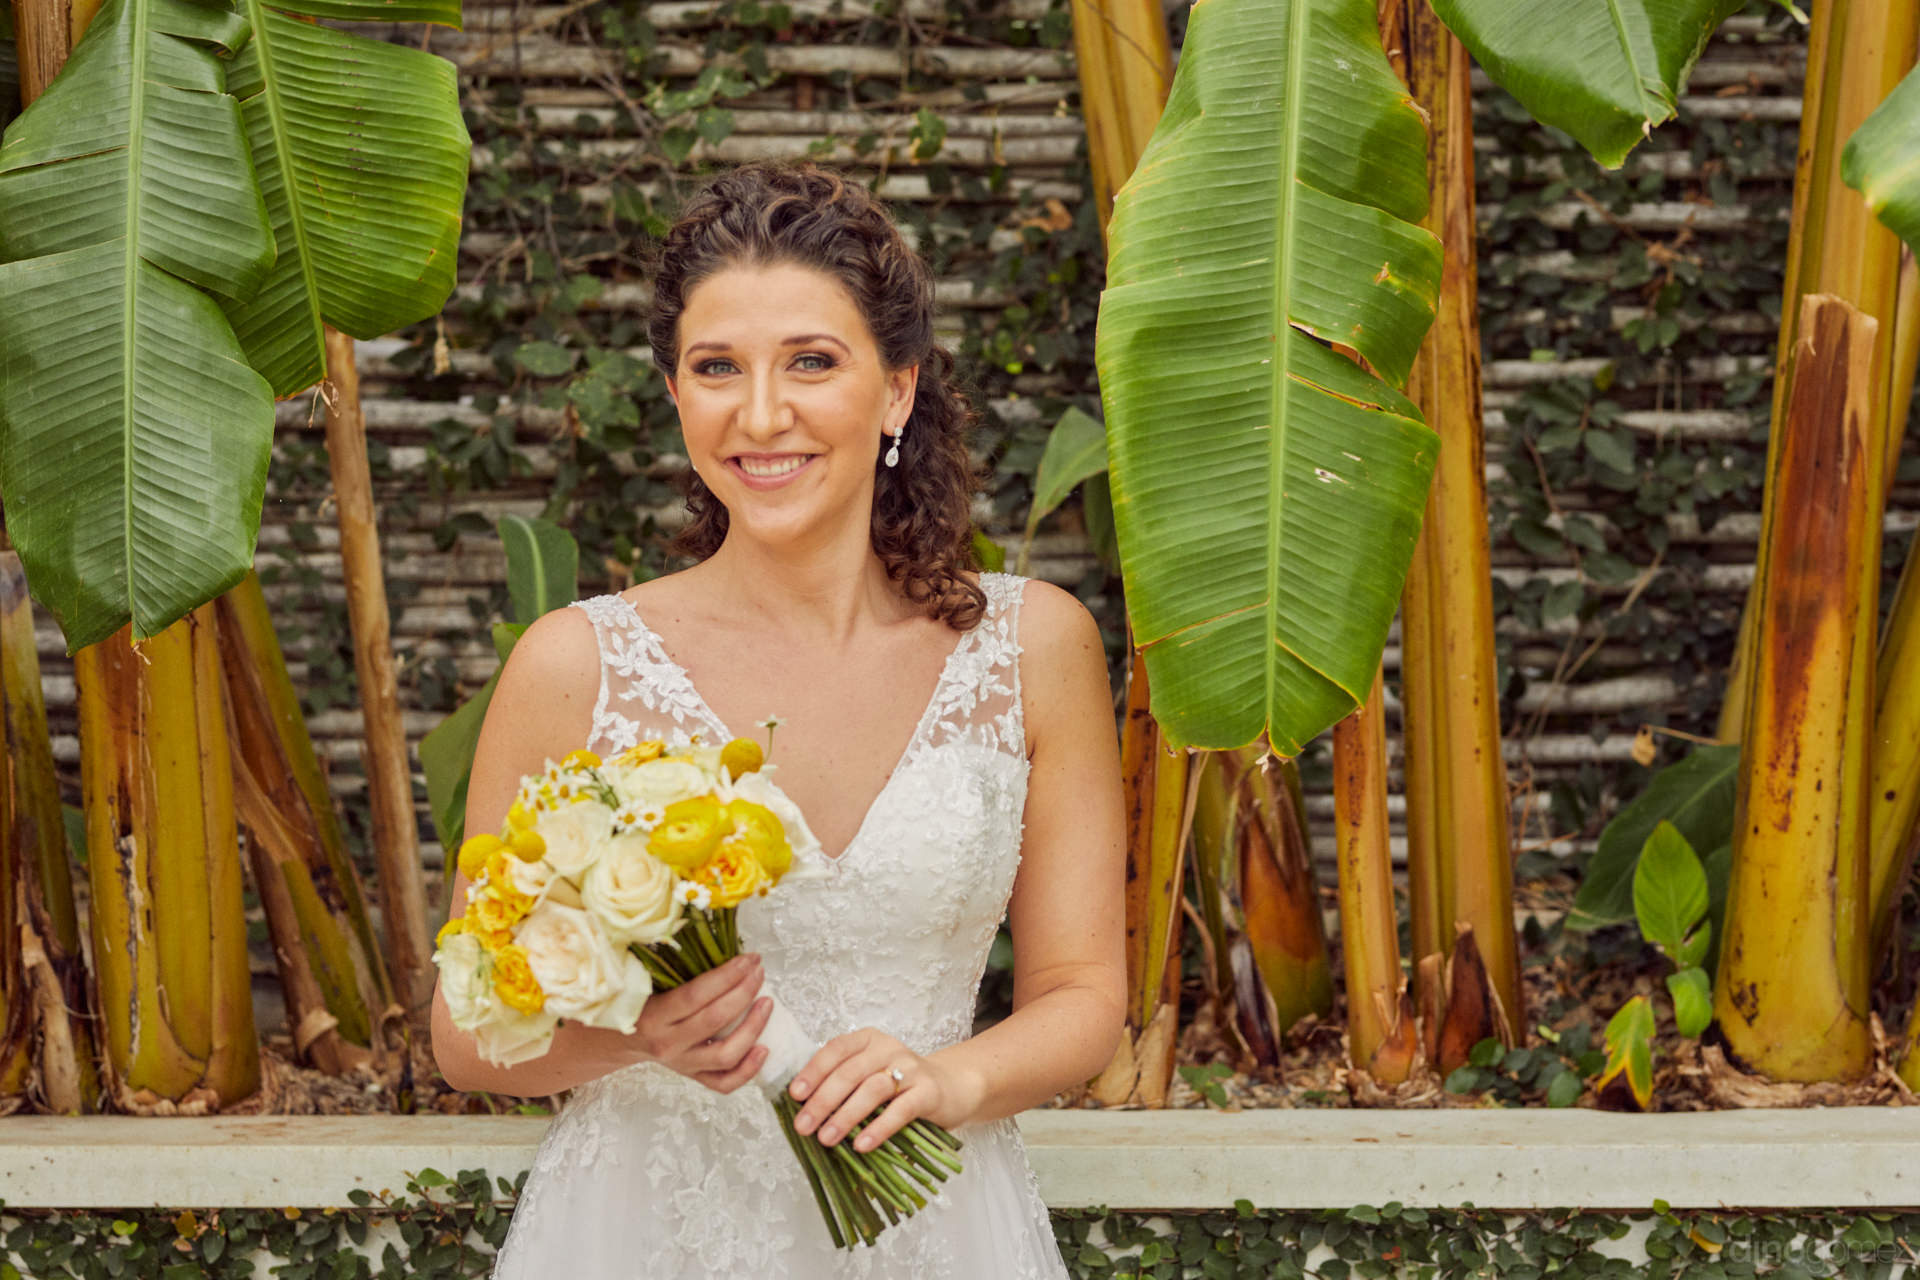 Boho Wedding Photographers In Los Cabos Mexico - Hilary & Bryan Flora Wedding